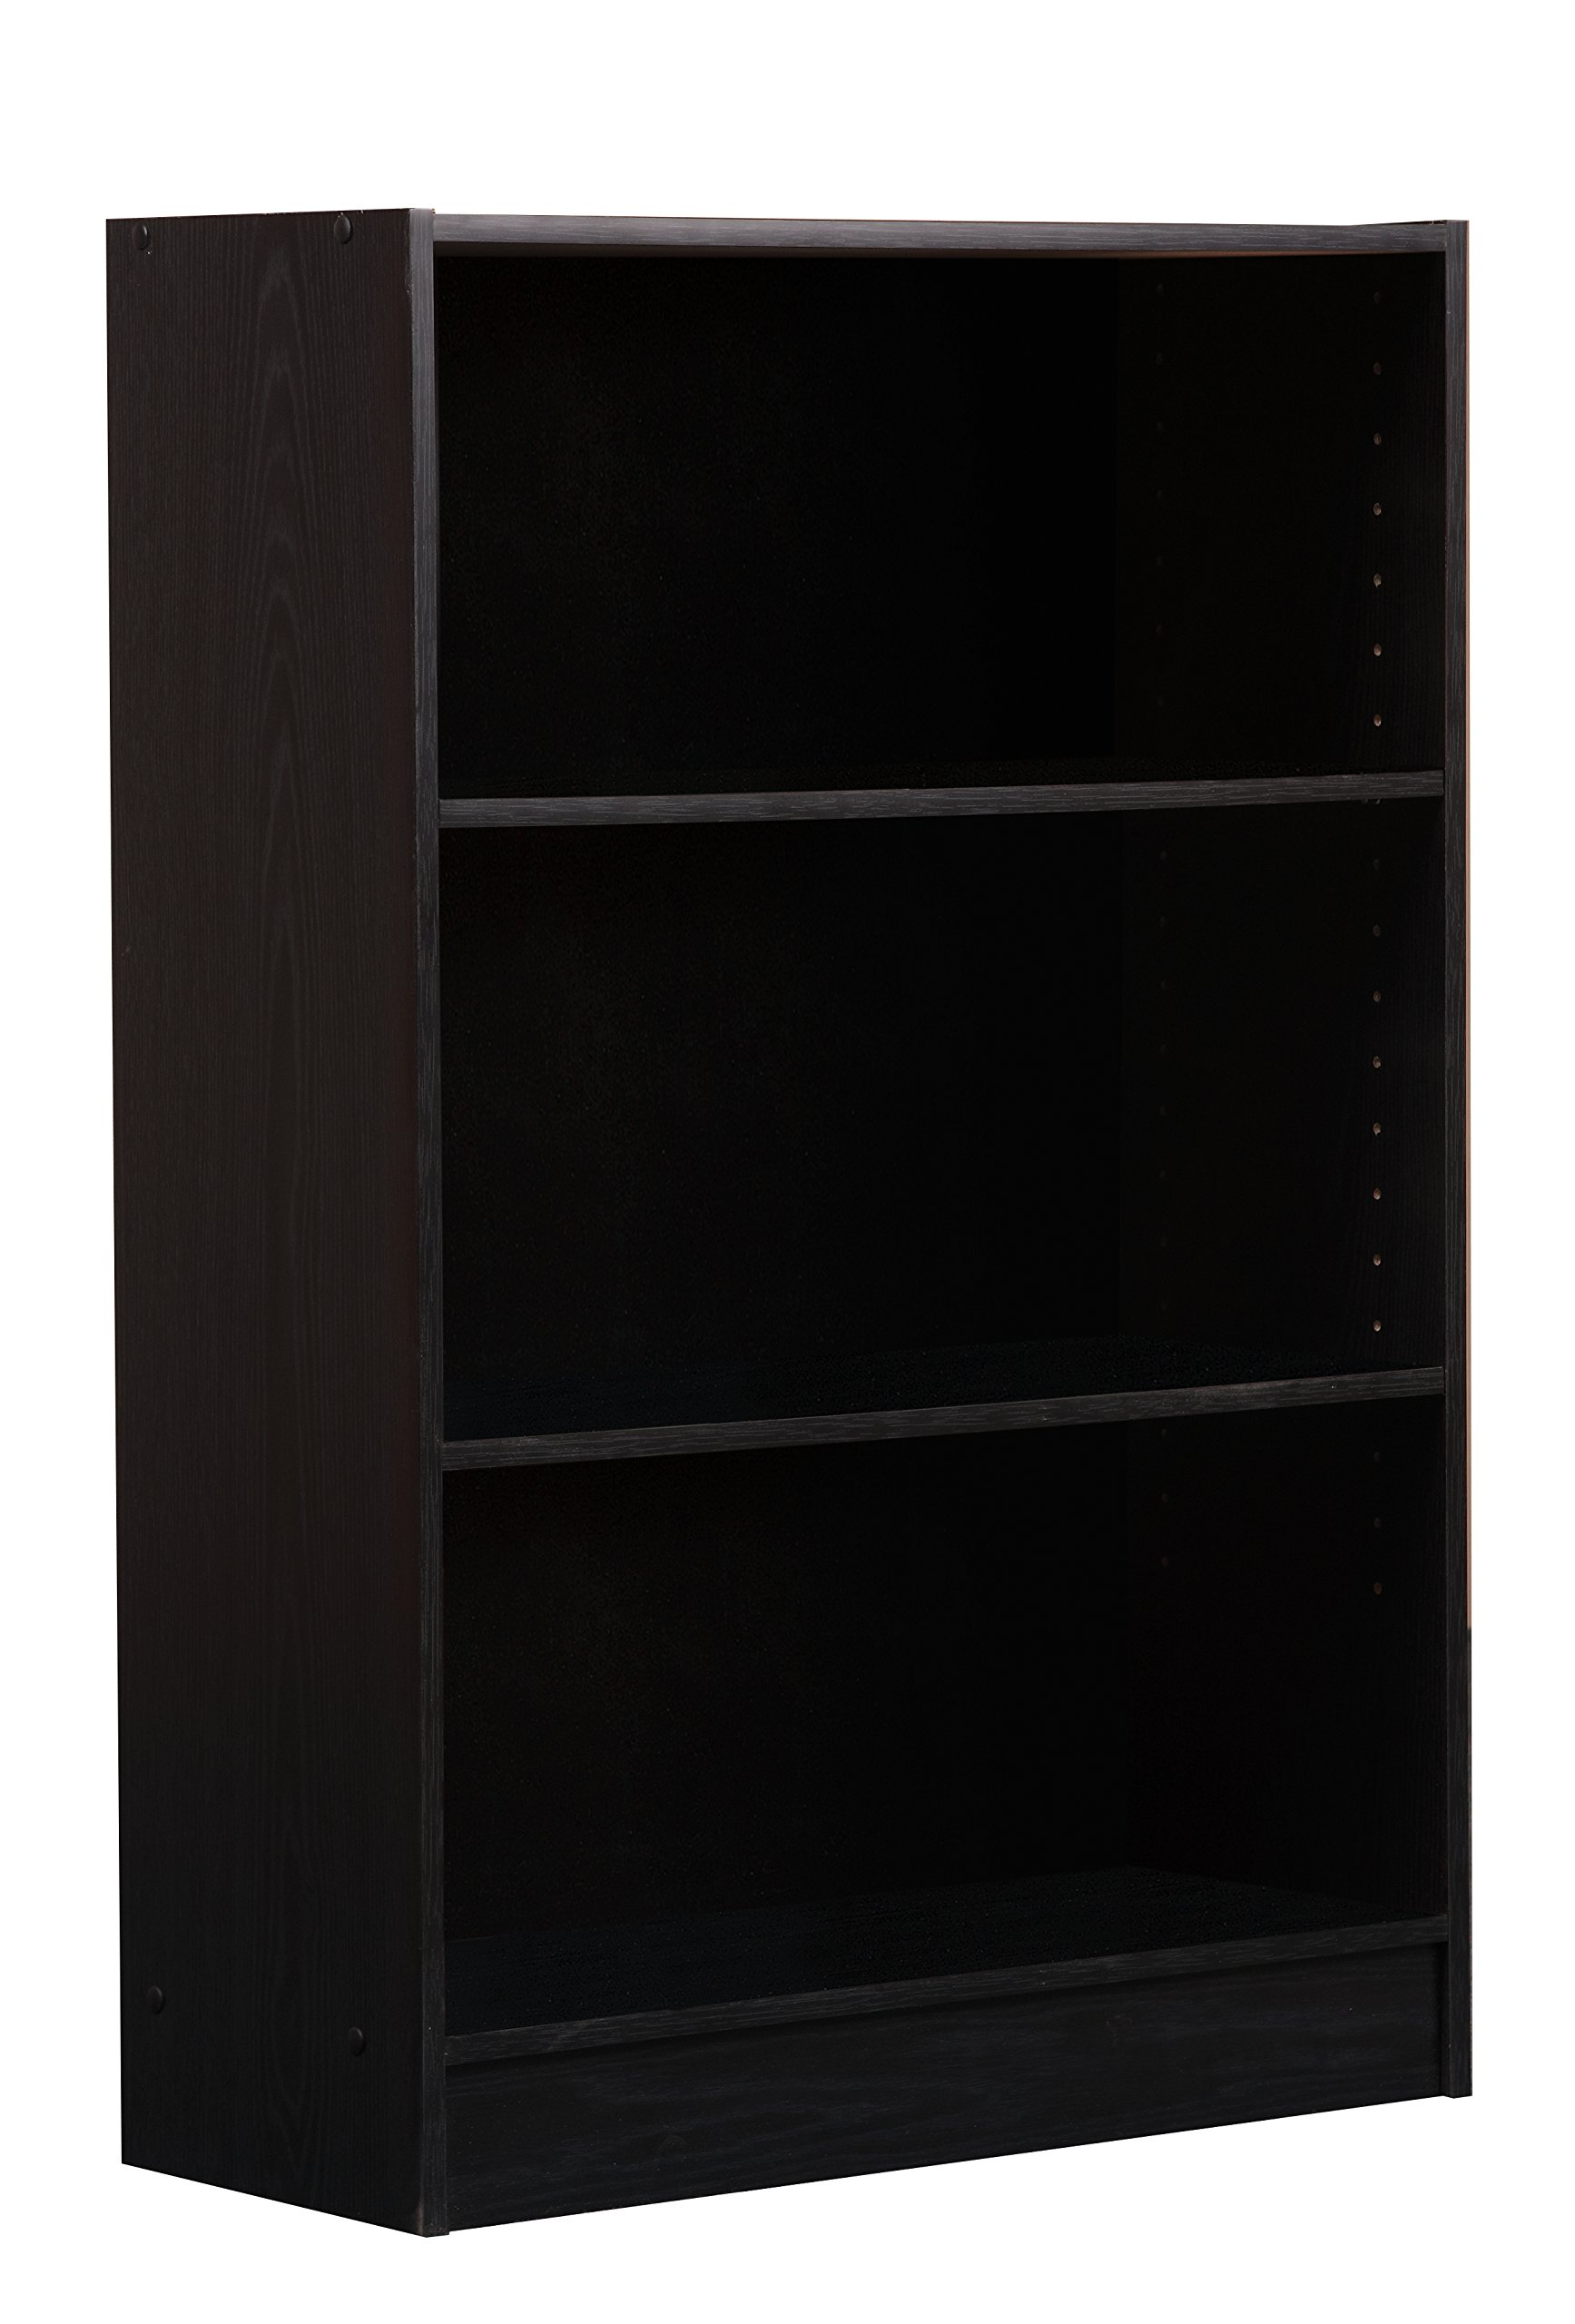 Mylex Three Shelf Bookcase Two Adjustable Shelves 9 5 X 24 5 X 35 5 Inches Black Assembly Required 43004